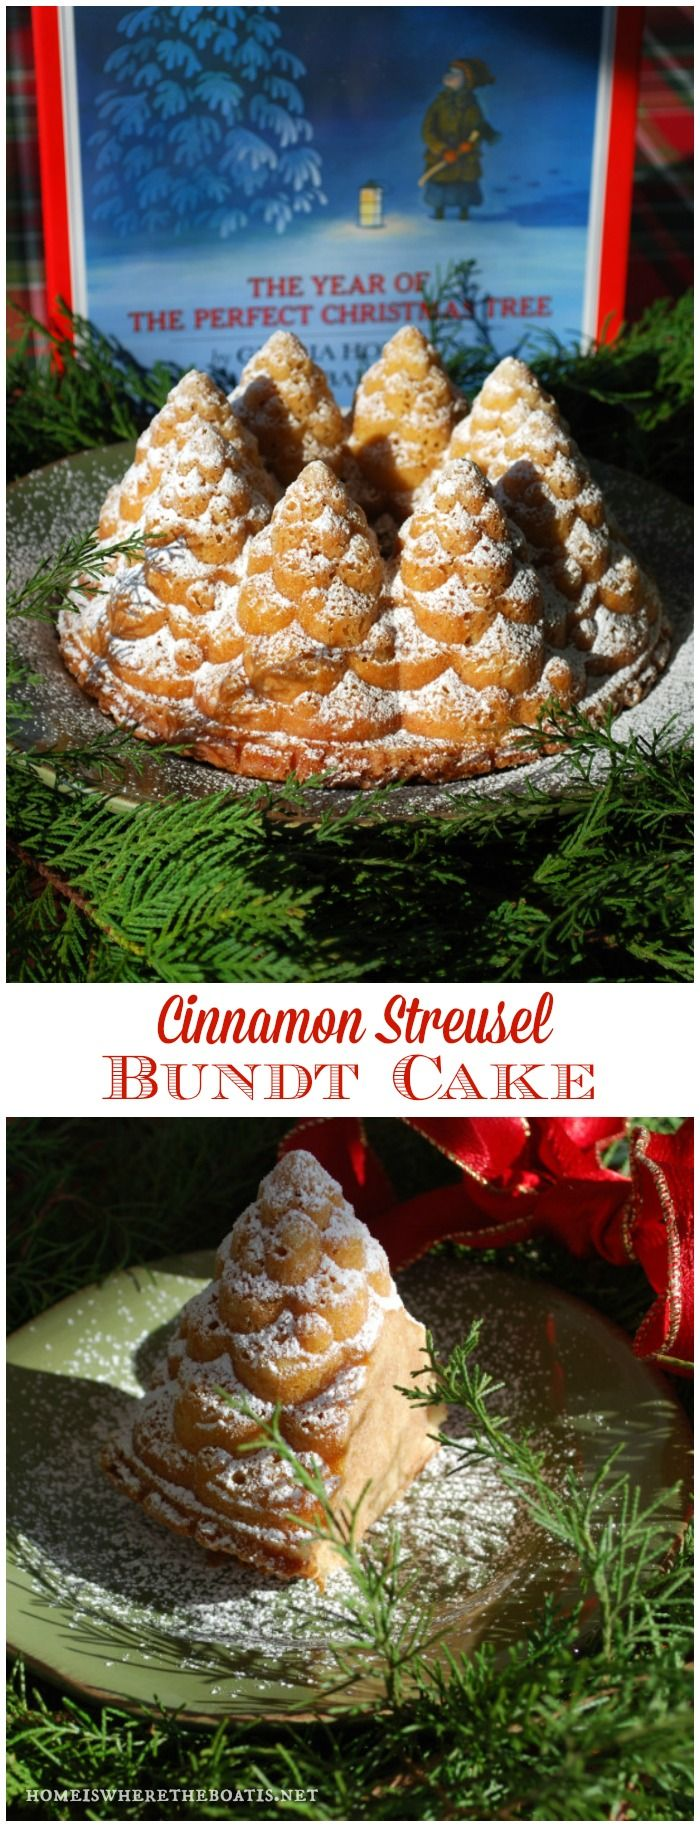 Christmas bundt pan. I need to start collecting bundt pans. They're so pretty!